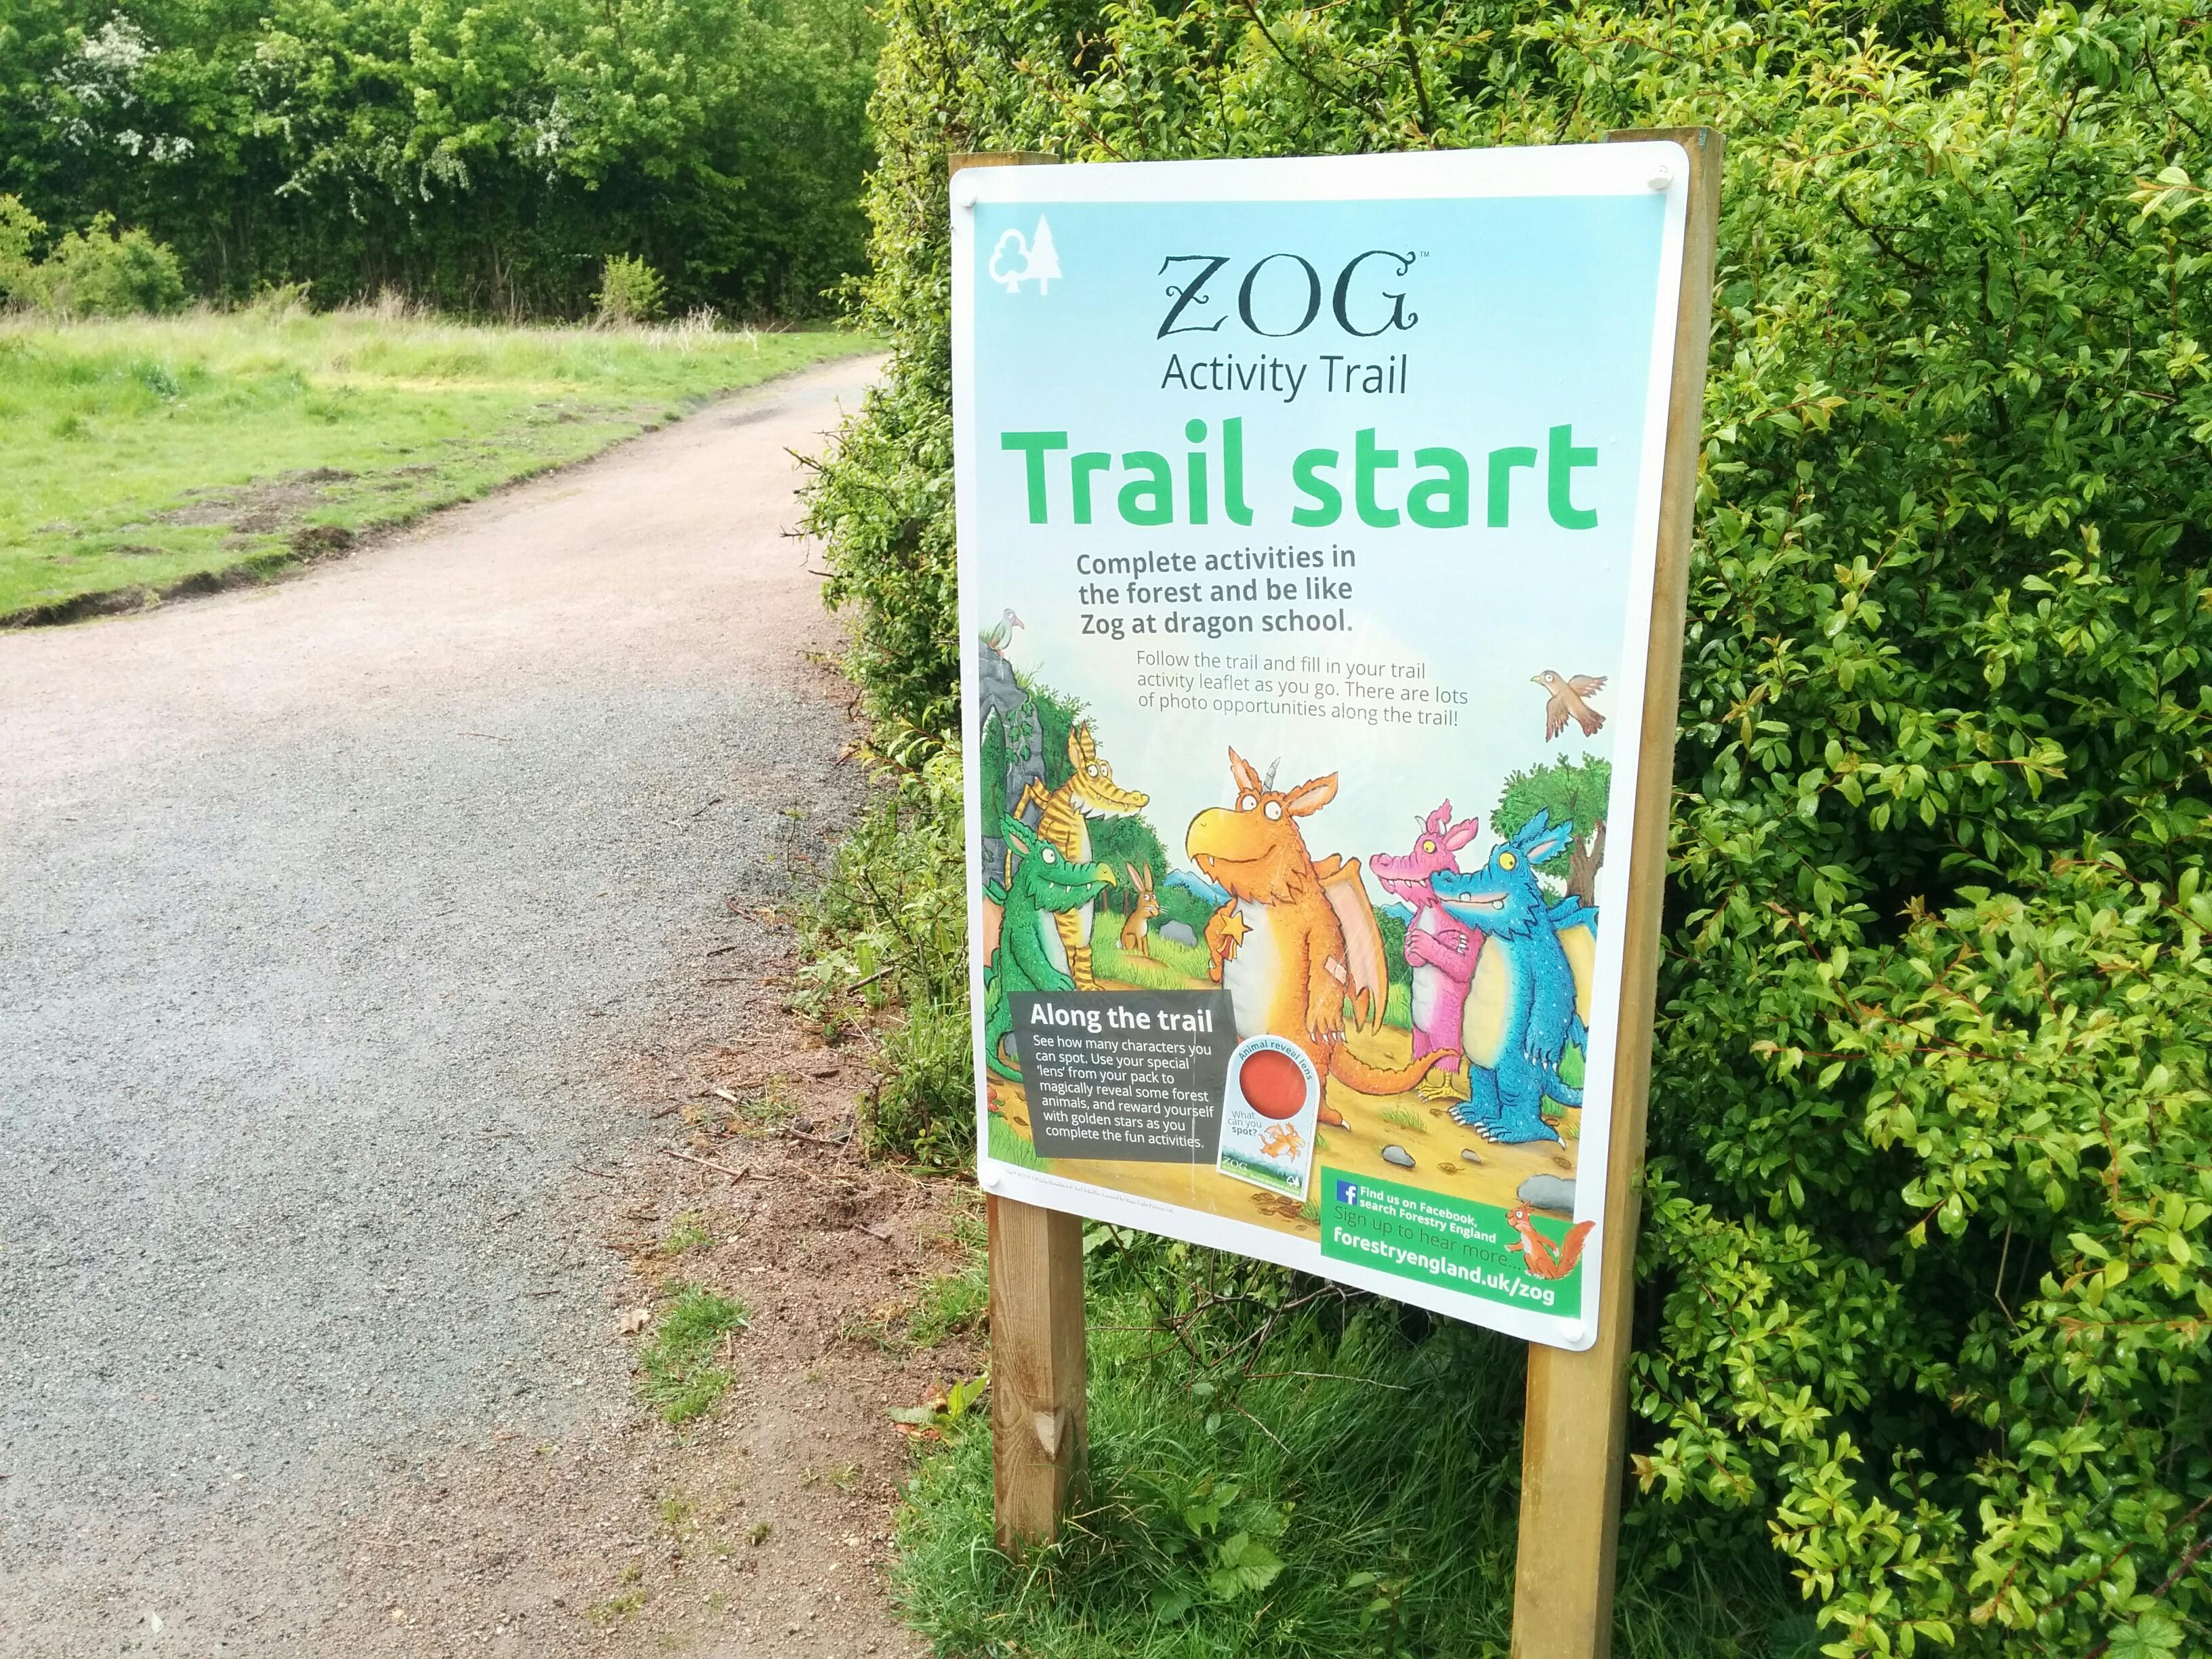 Start of Zog trail at Thames Chase